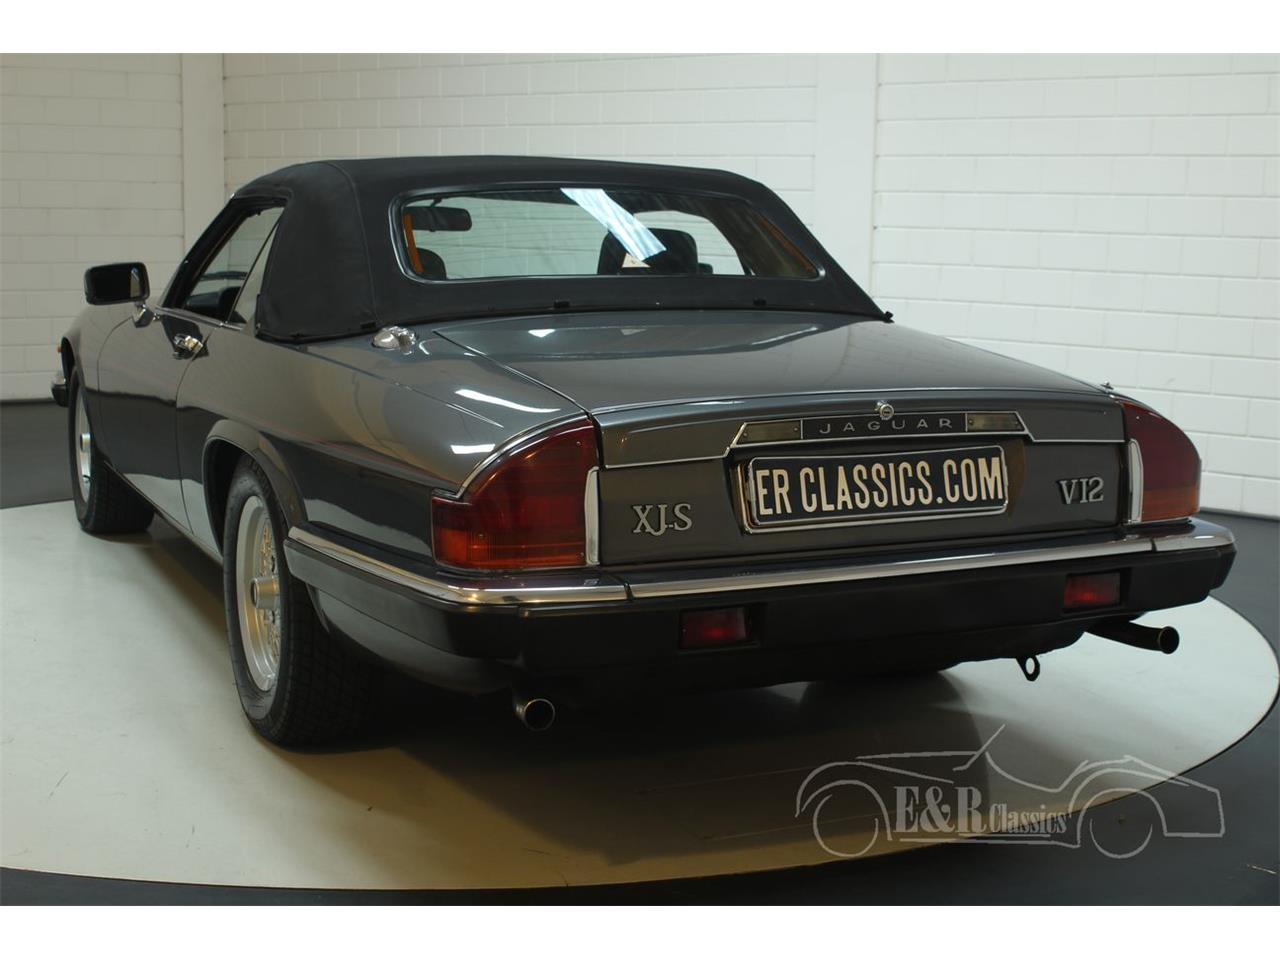 Large Picture of '88 XJS located in Waalwijk - Keine Angabe - - $30,500.00 Offered by E & R Classics - PGSZ